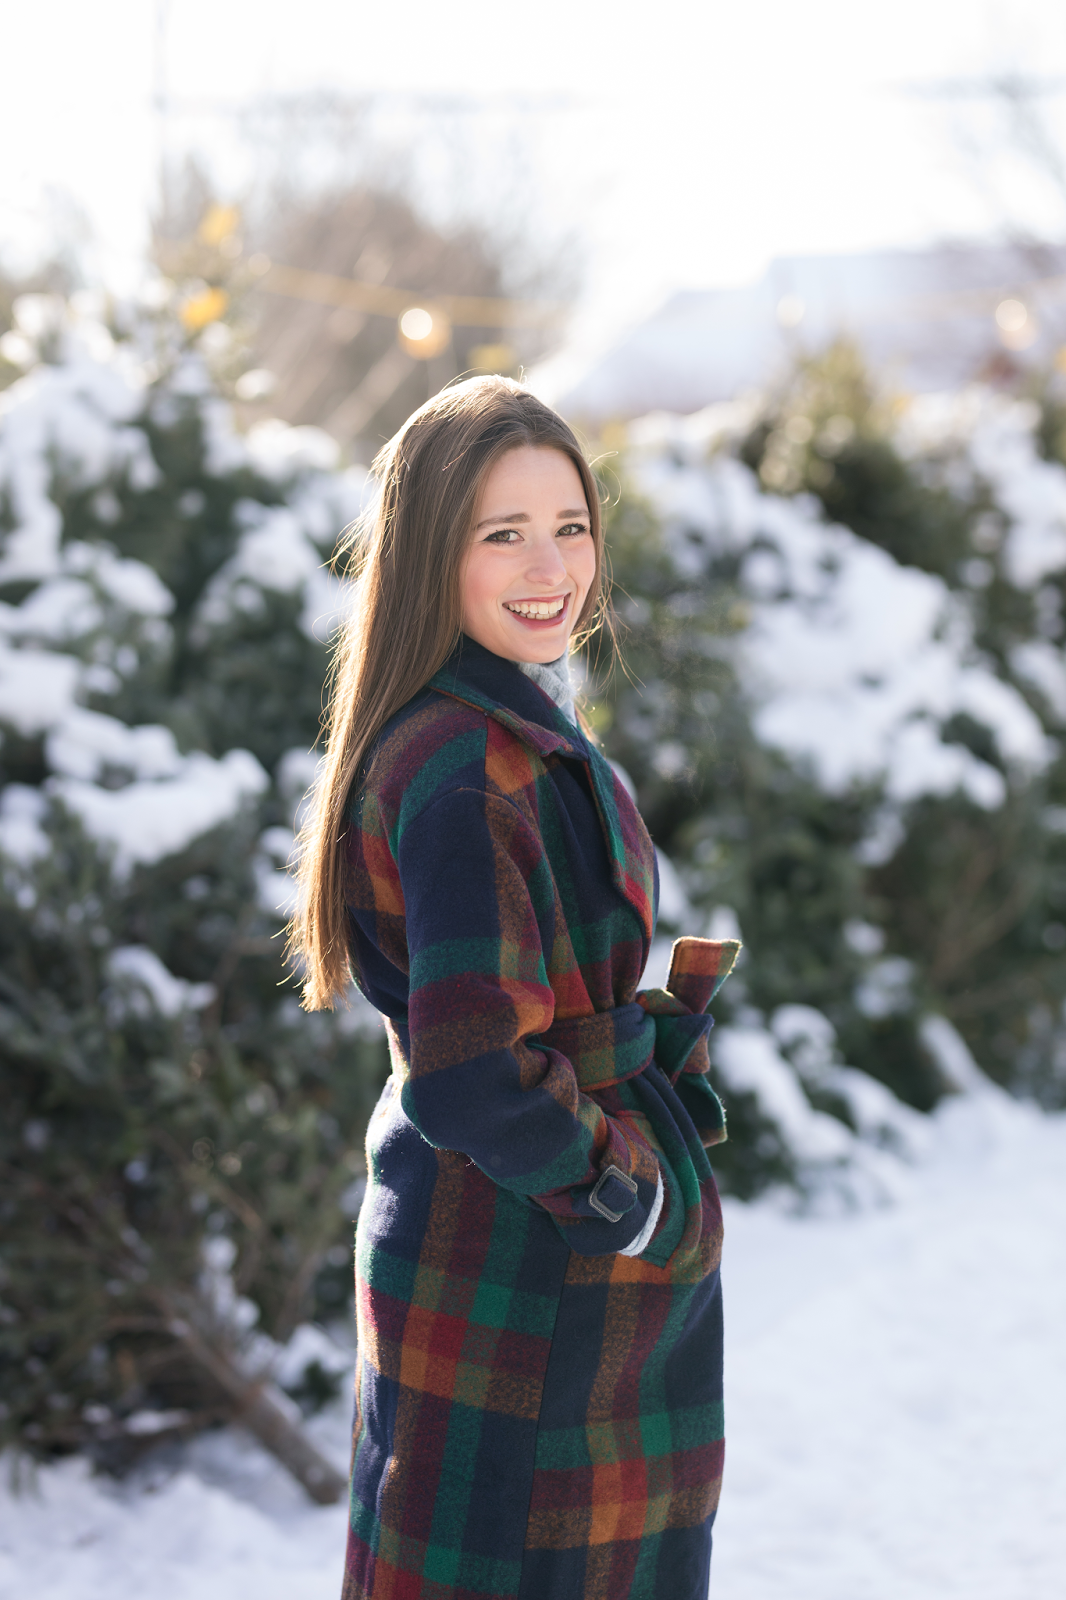 Preppy Plaid Coat + Christmas Trees